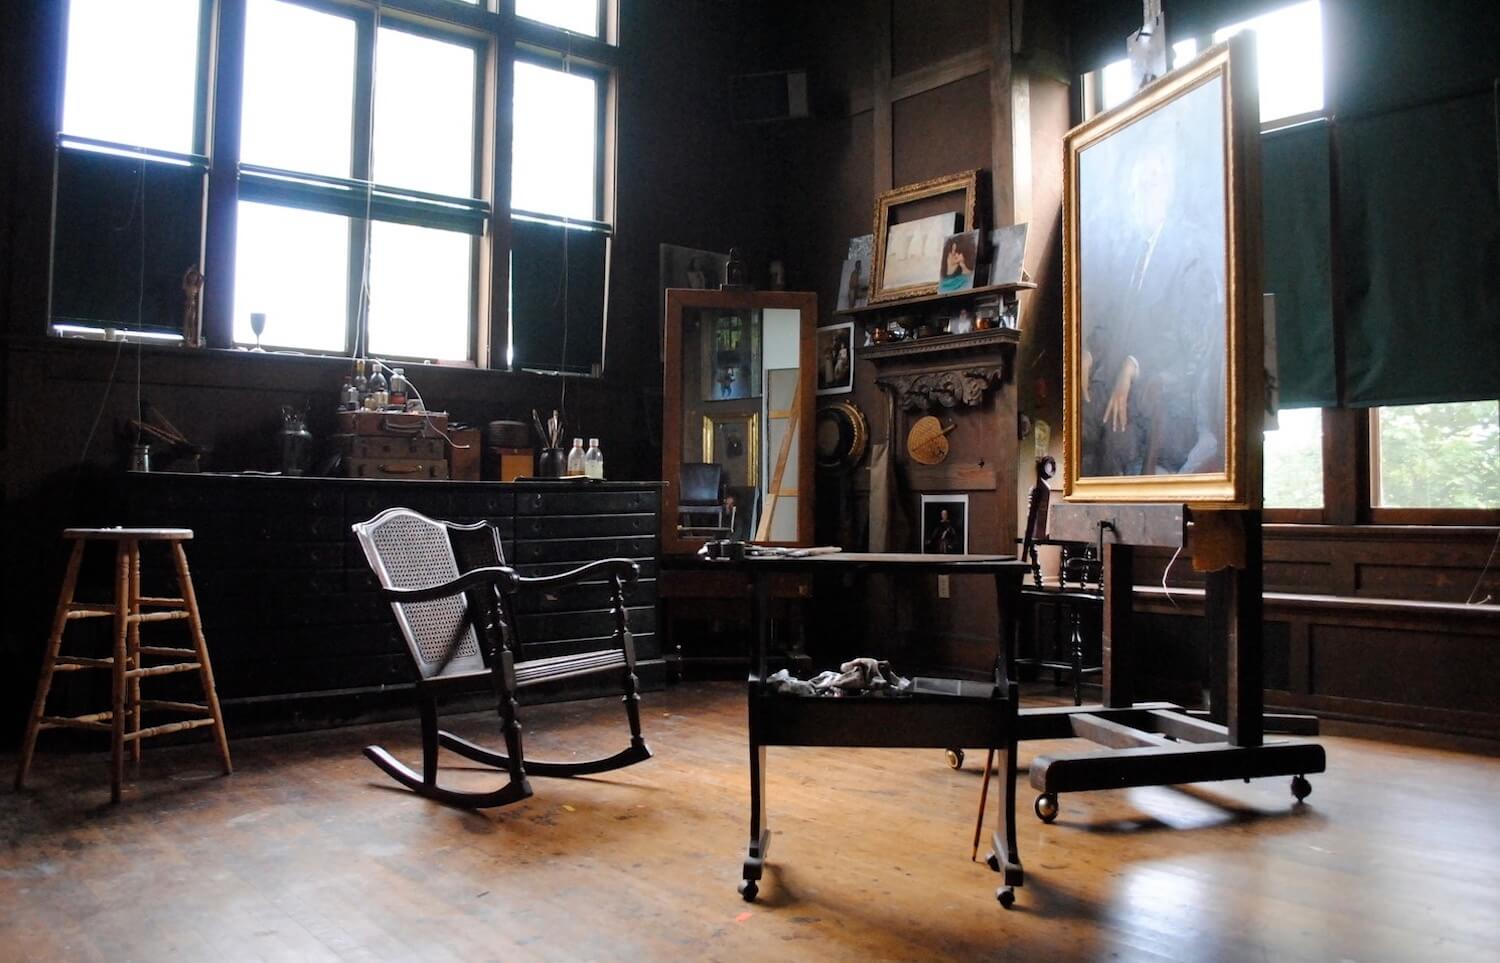 Historic Wessel House studio with Duveneck easel